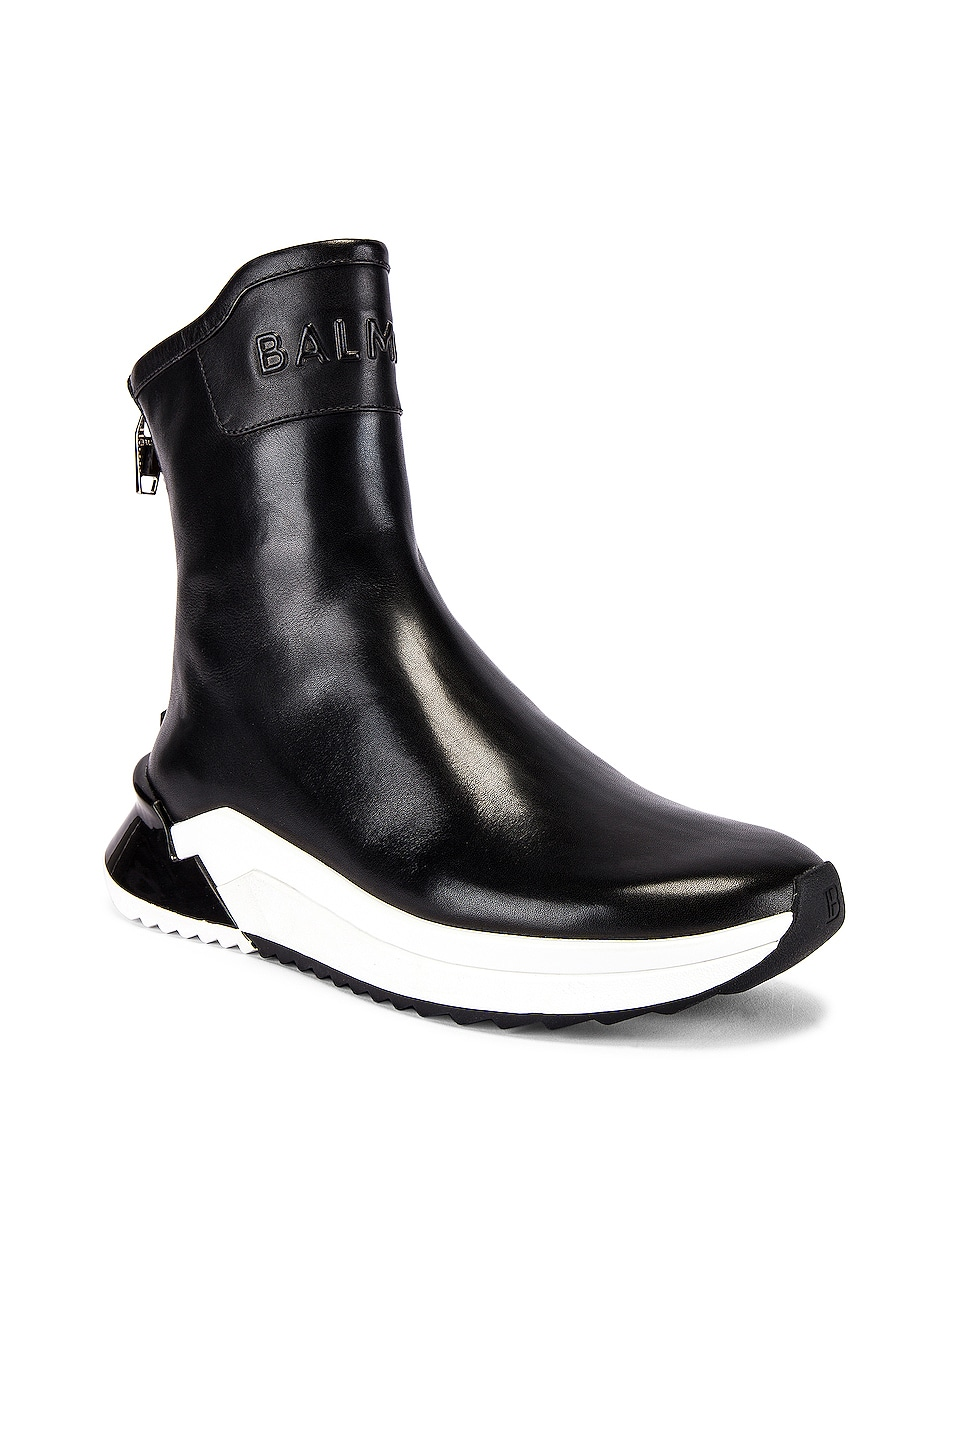 Image 1 of BALMAIN Glove Leather Sneaker in Noir